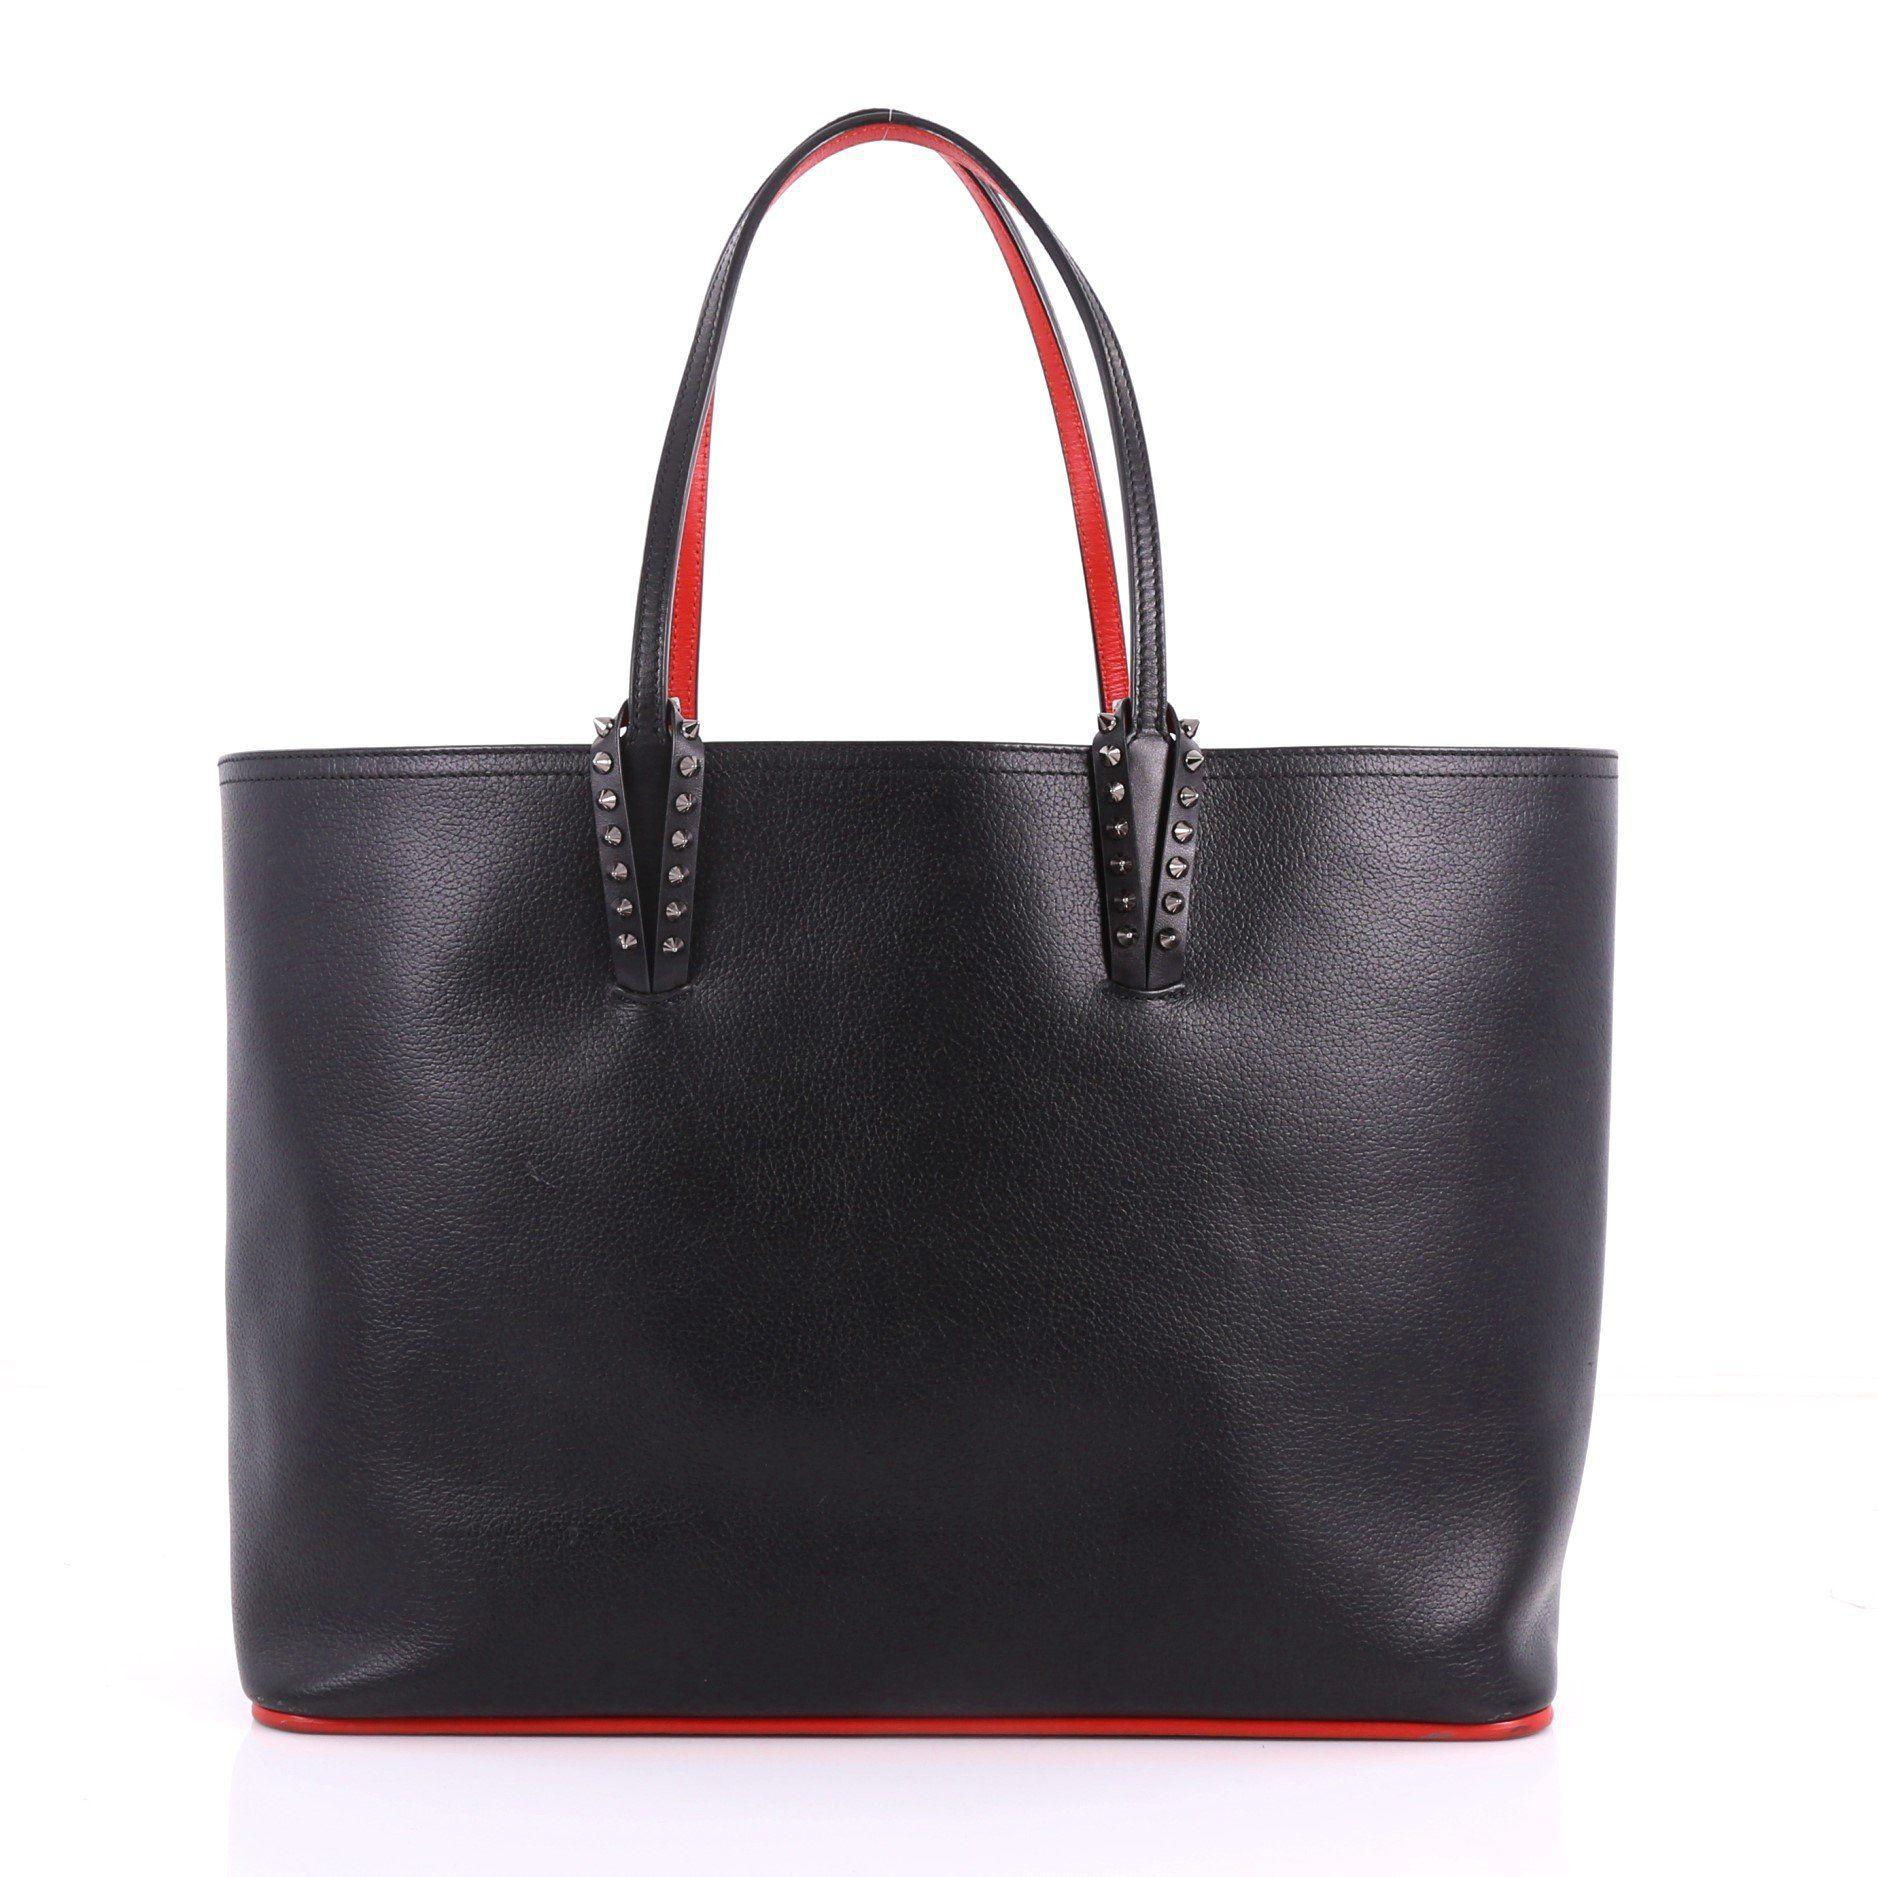 f93a3d1d0d9 Lyst - Christian Louboutin Pre Owned Cabata East West Tote Leather ...